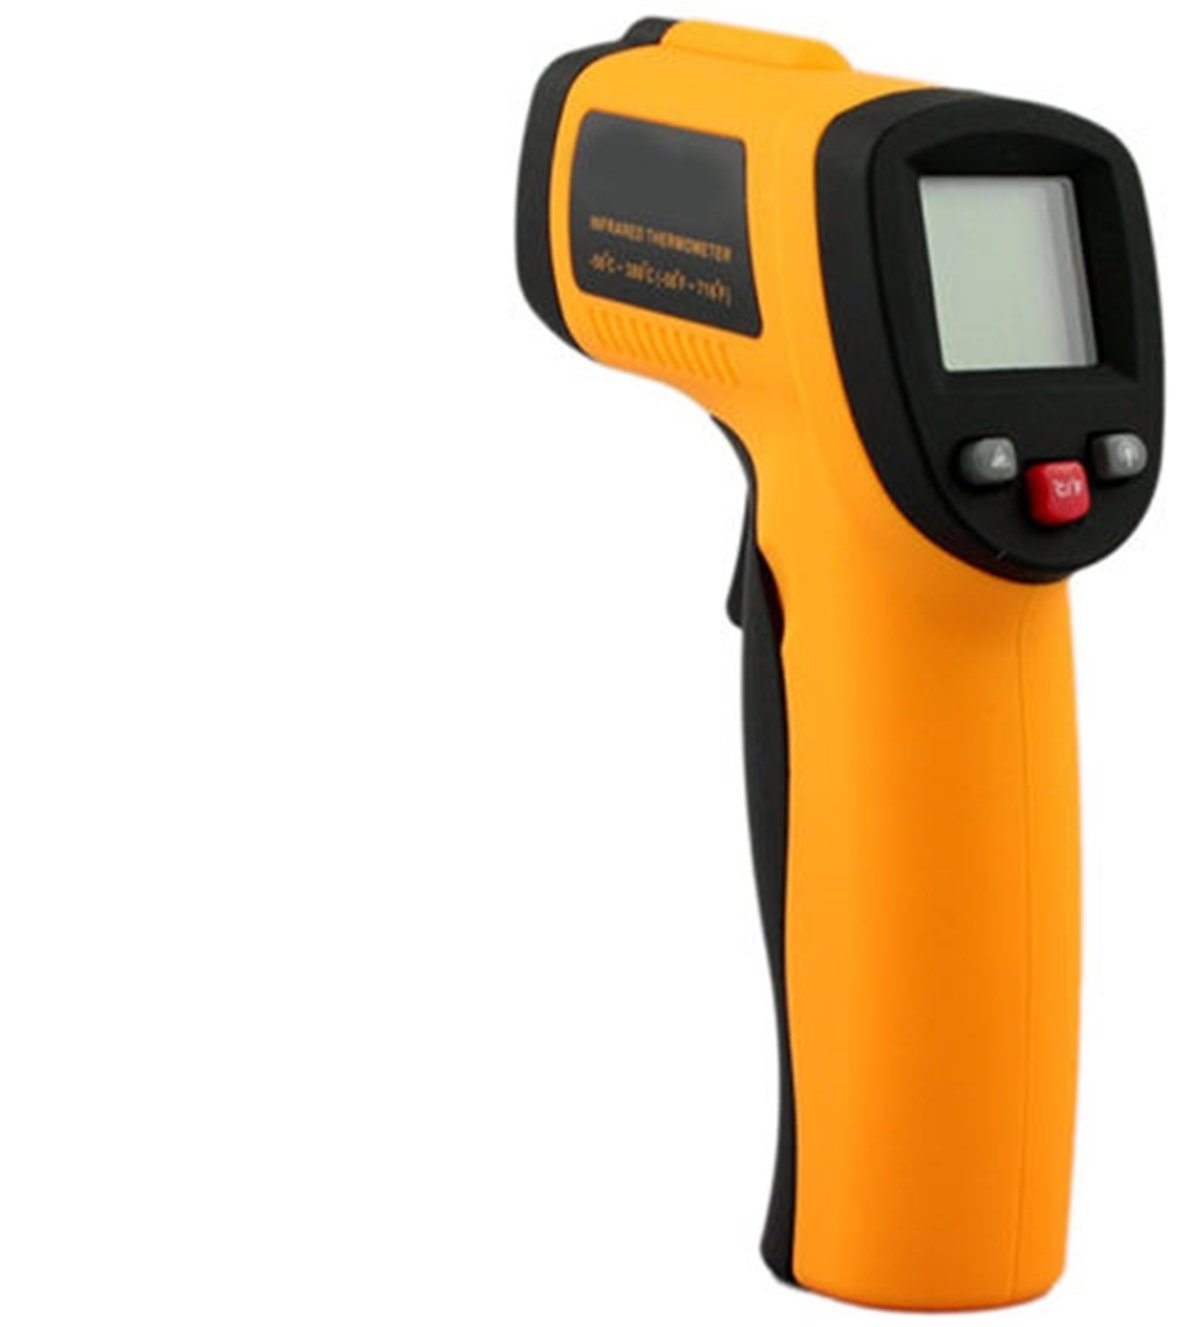 Heaven Tvcz Digital Temperature Gun Non-Contact Infrared IR Laser Thermometer -58~1022 °F Meter Cooking LCD